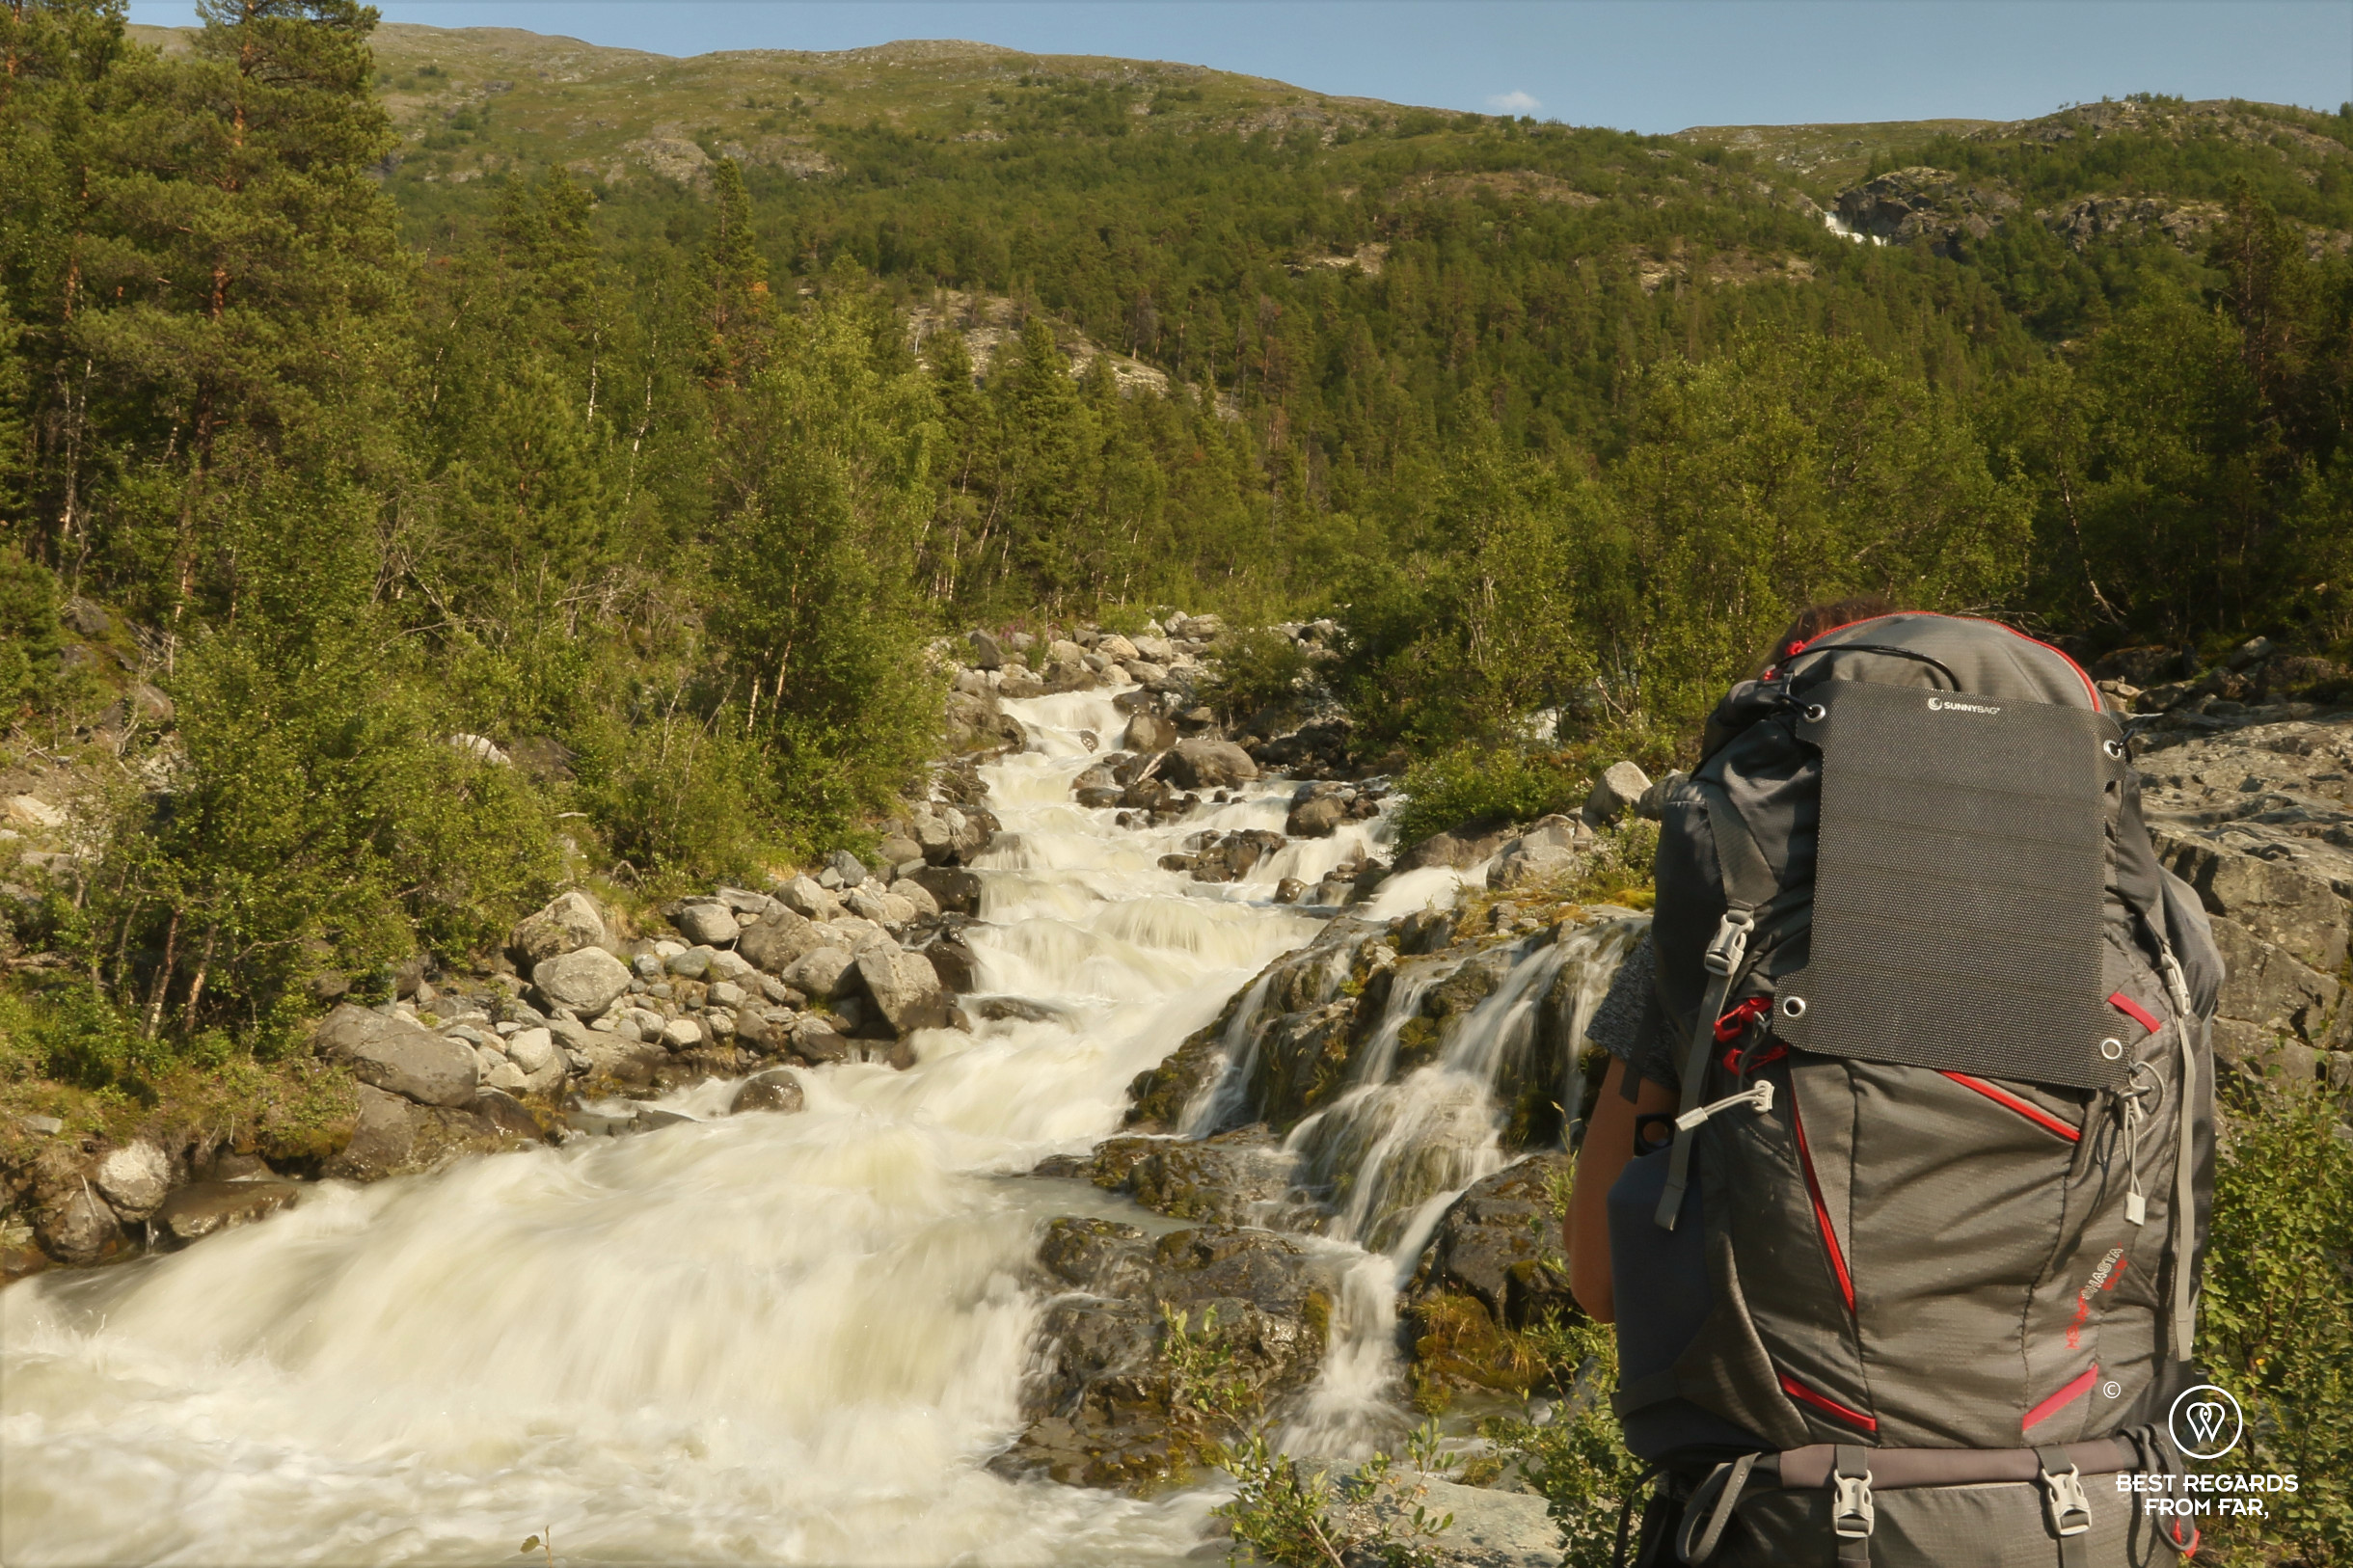 Woman with large backpack looking at the white waters of a river in a pine forest